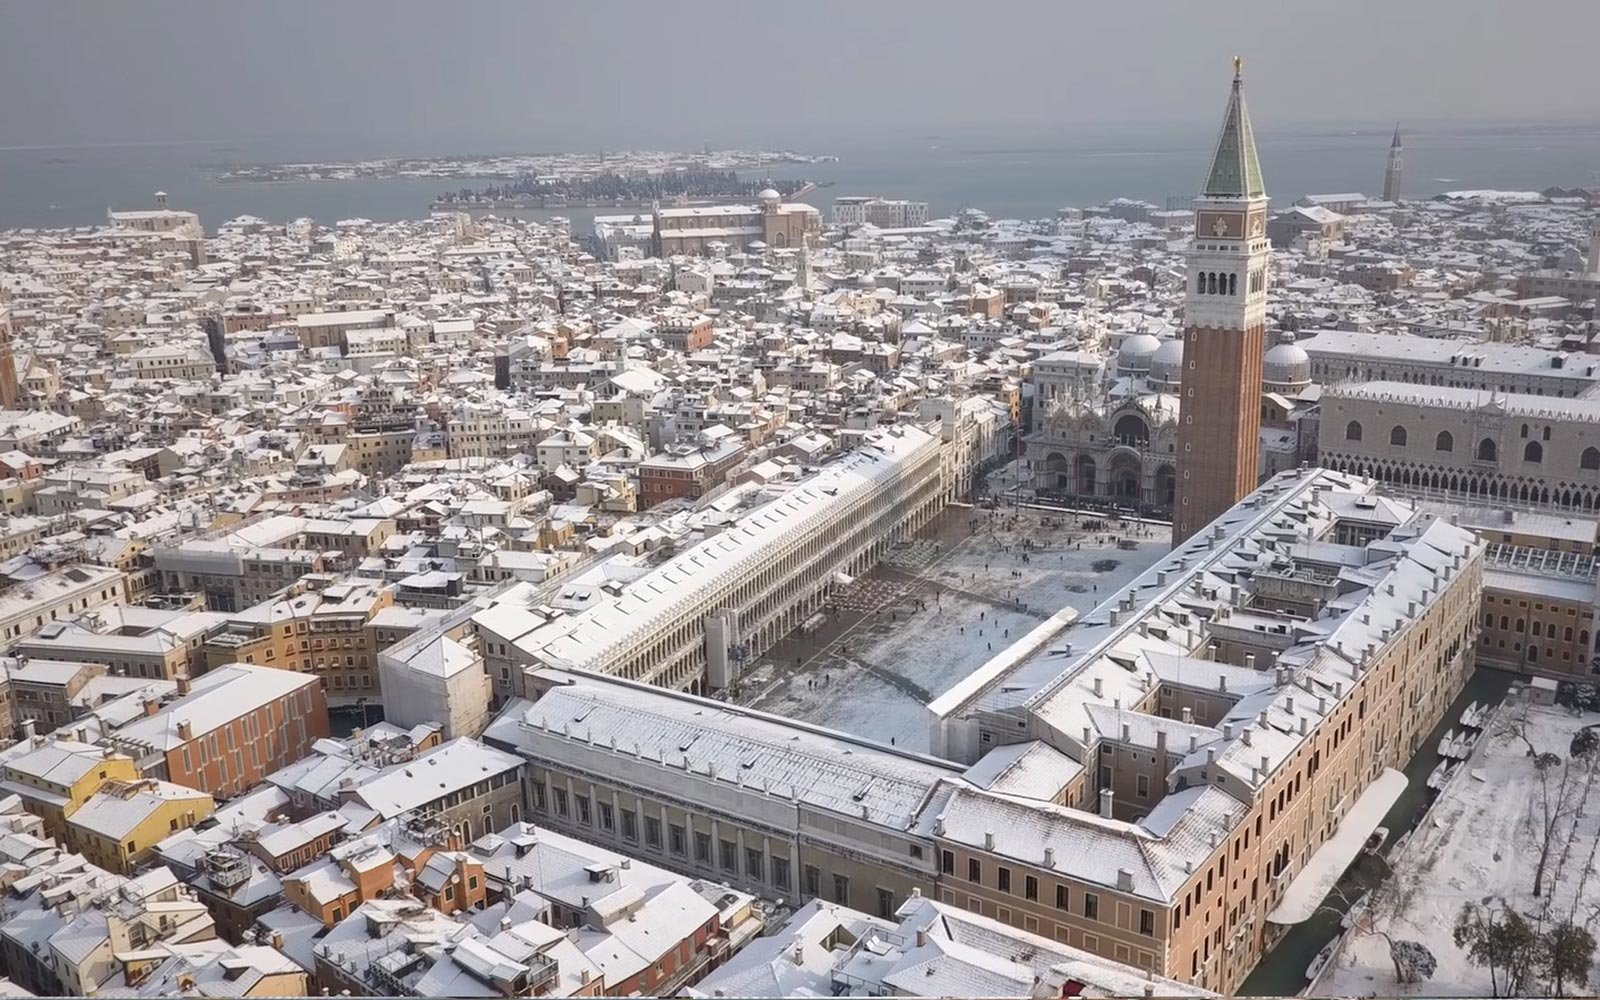 Venice Looks Absolutely Breathtaking Covered In Snow